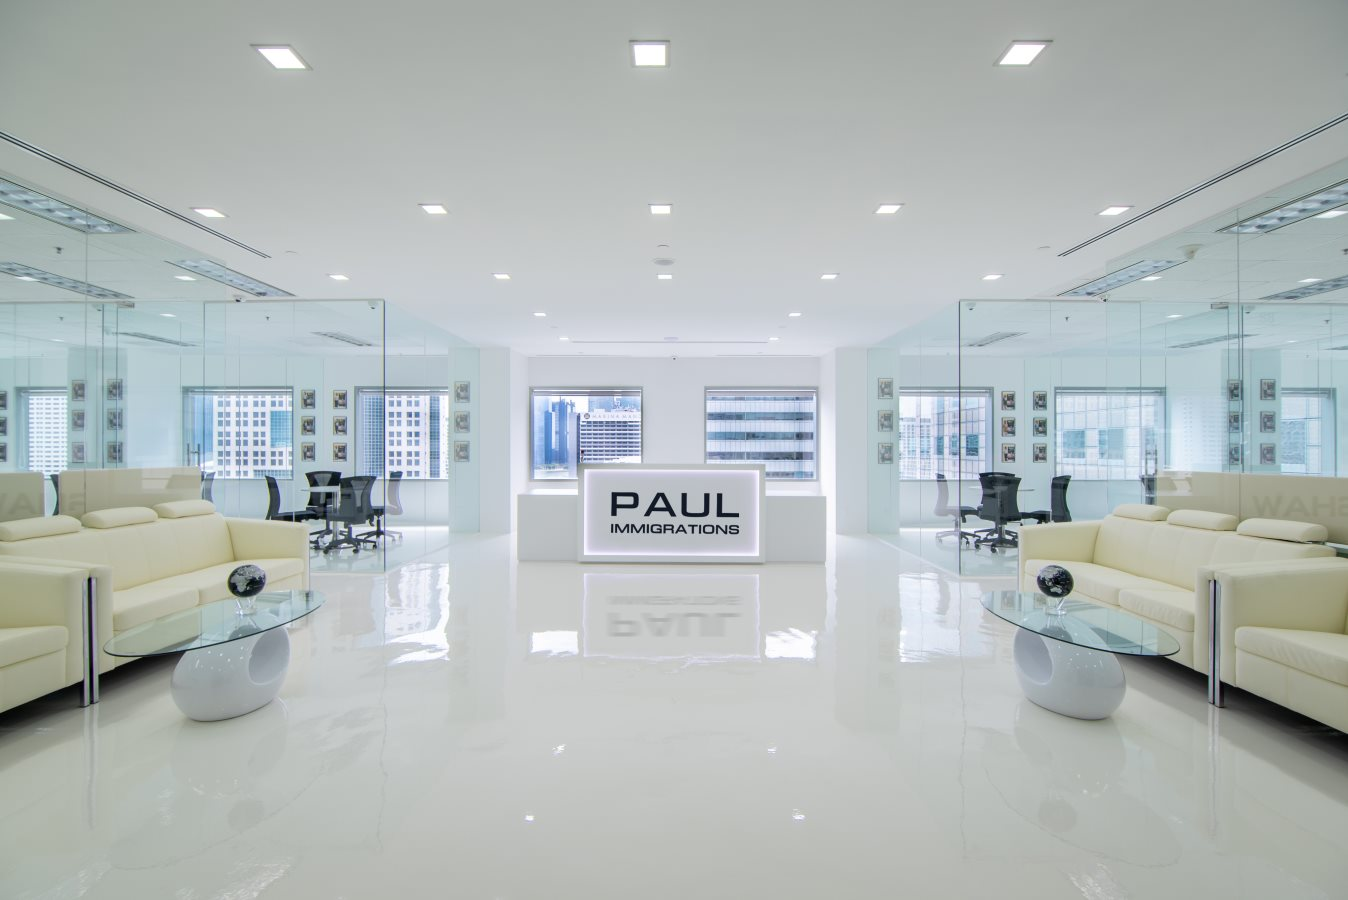 Deluxshionist - Paul Immigration Reviews to Apply Singapore PR